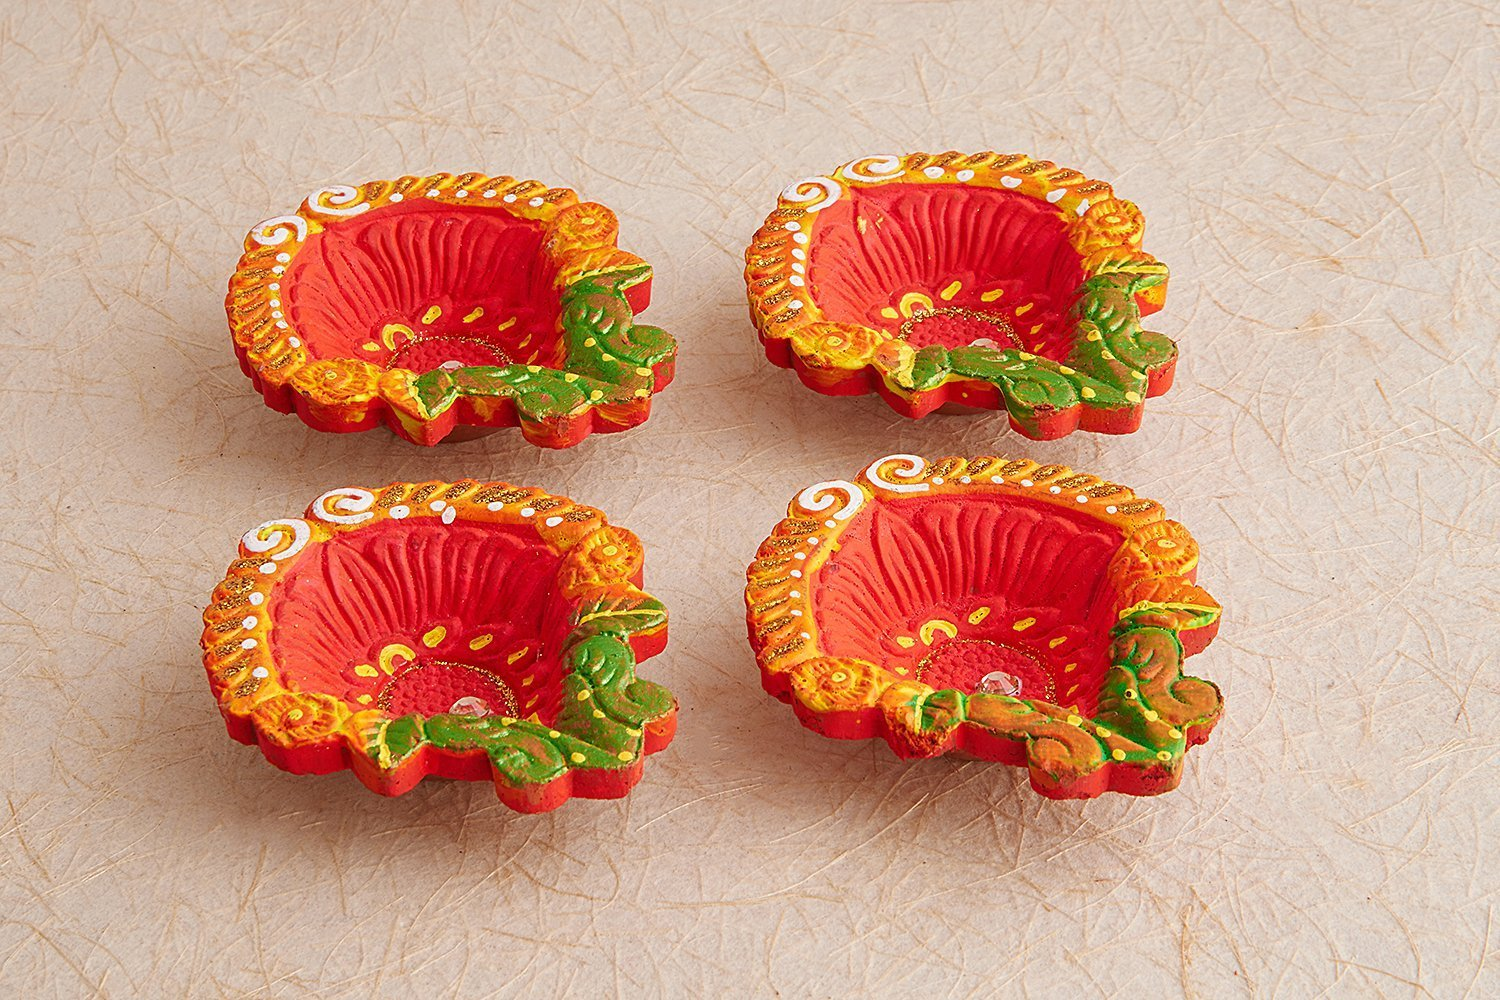 Set of 4 Diwali Decorations Colorful Oil Lamp Diya For Pooja/Puja Home Decor (Multicolor4)